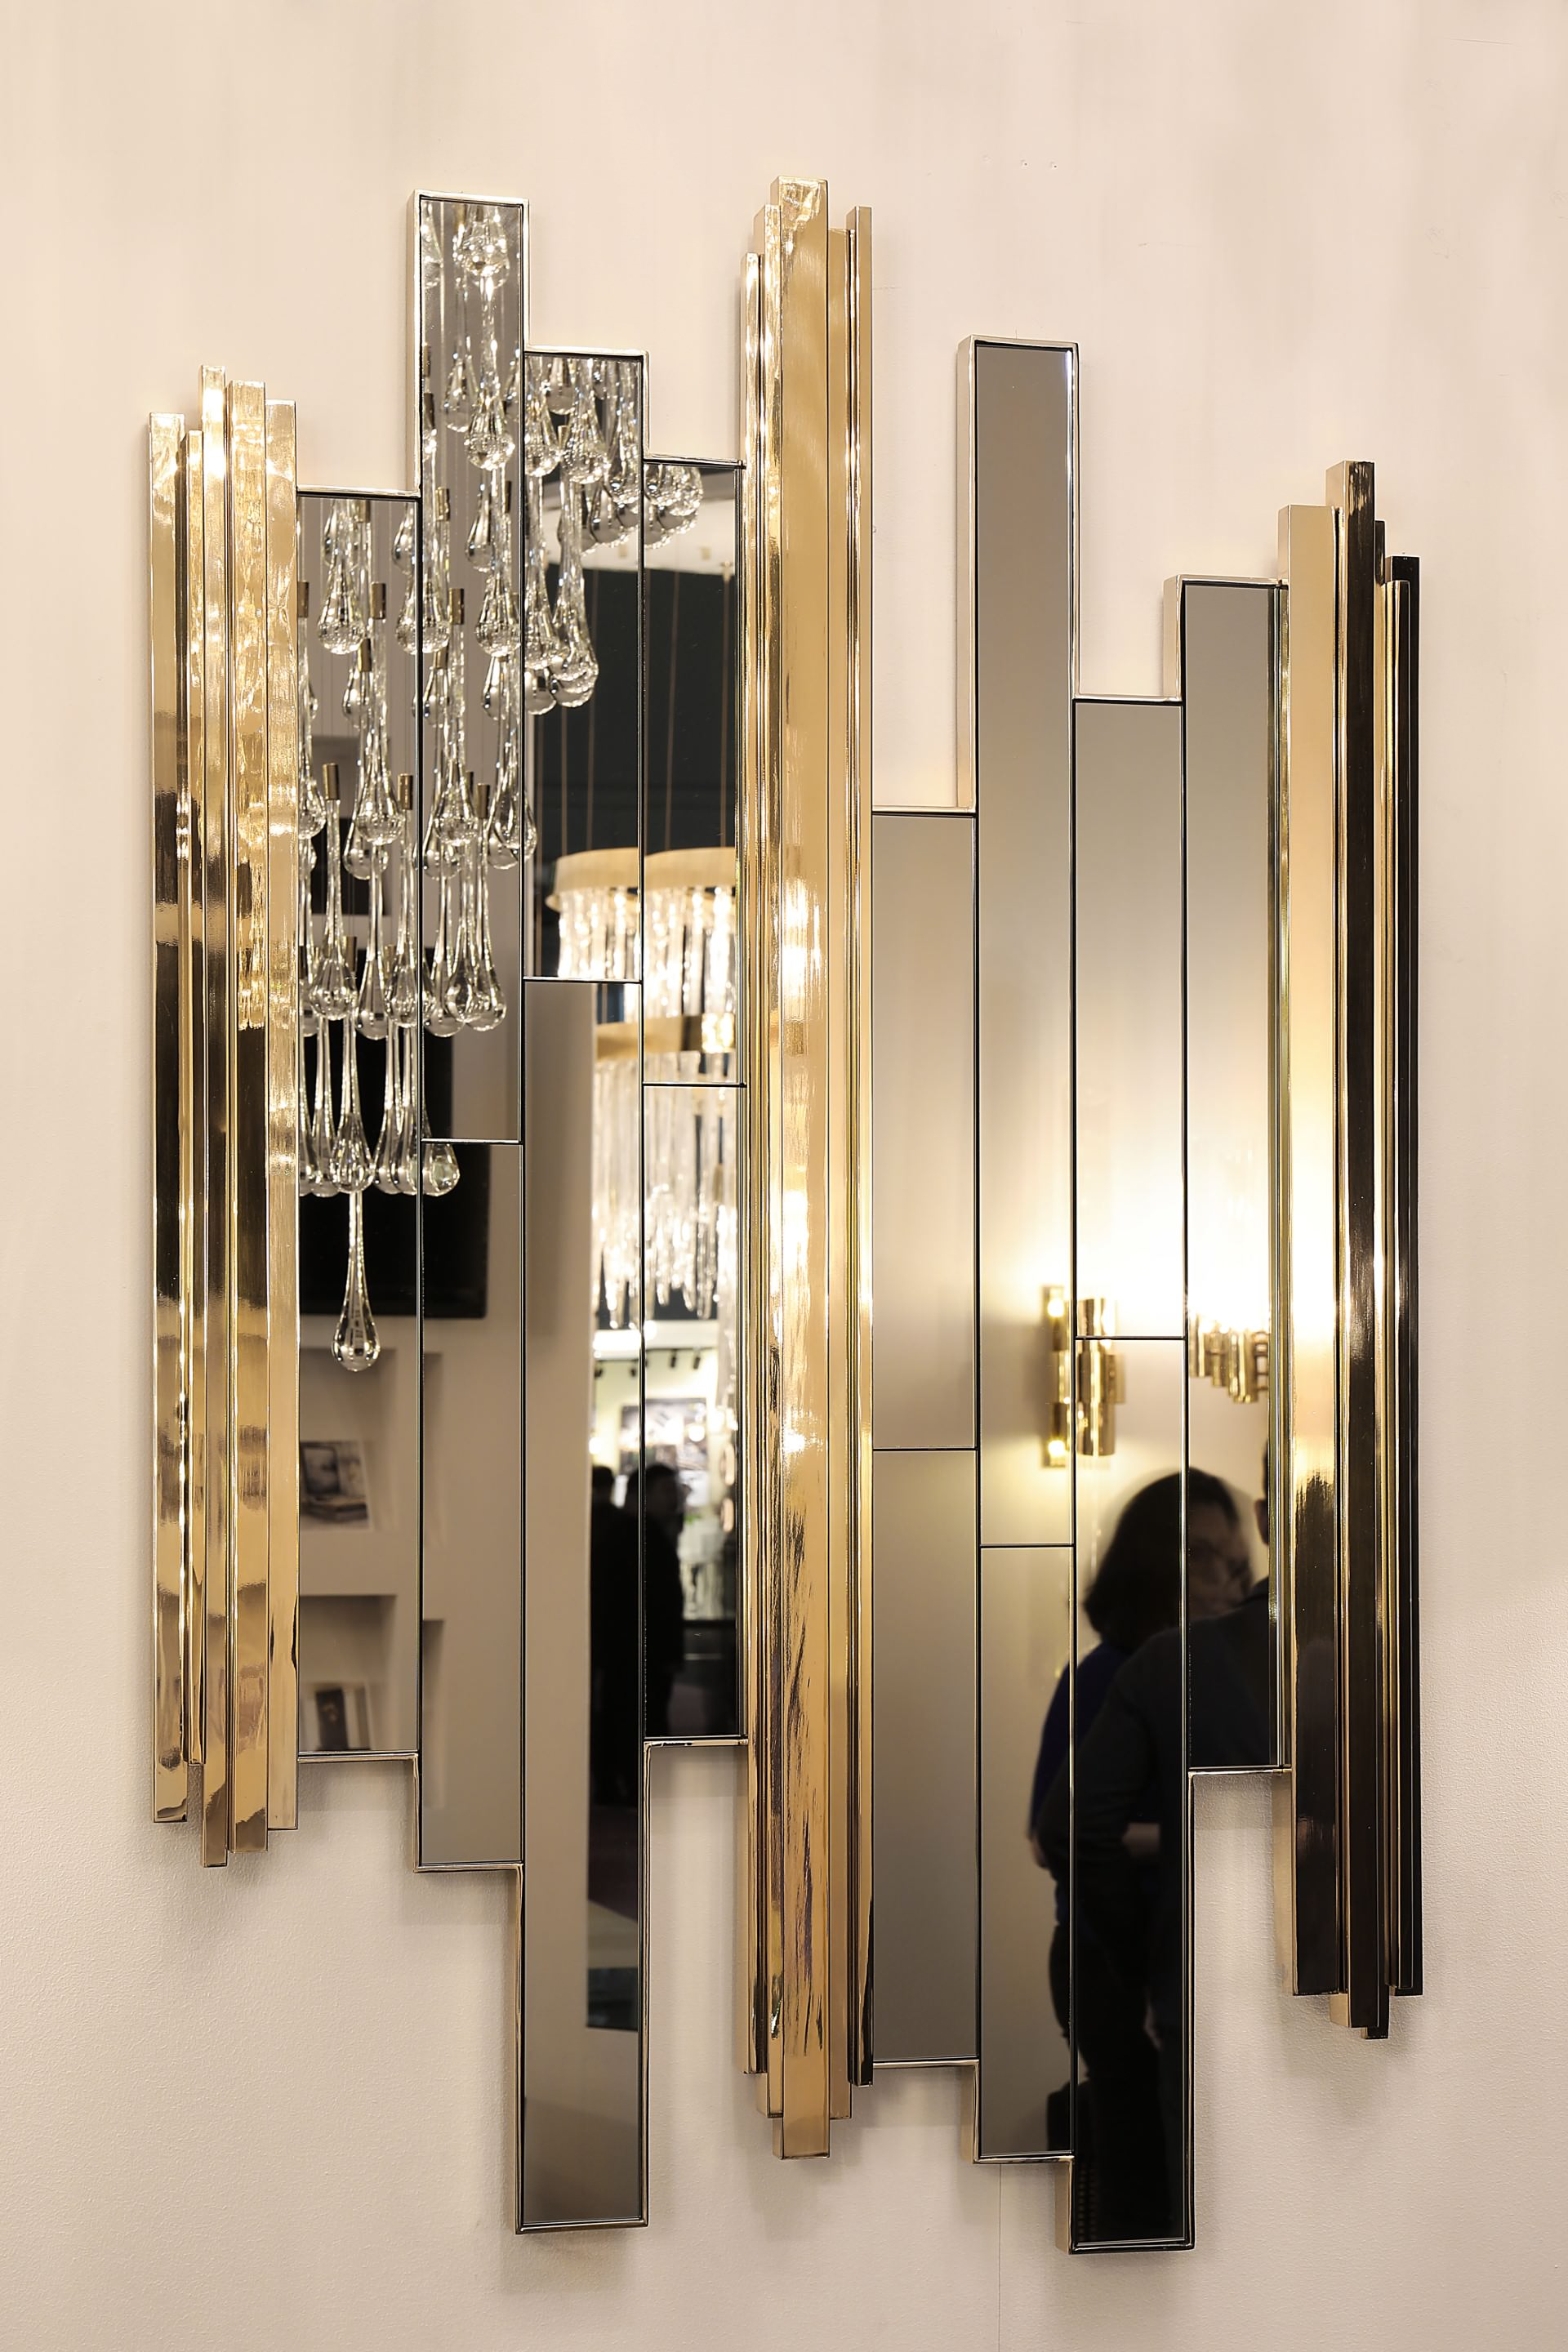 With its will to keep up with the Empire family high standards on exquisite and exceptional design, the Empire mirror's powerful lines are the result of an (...)